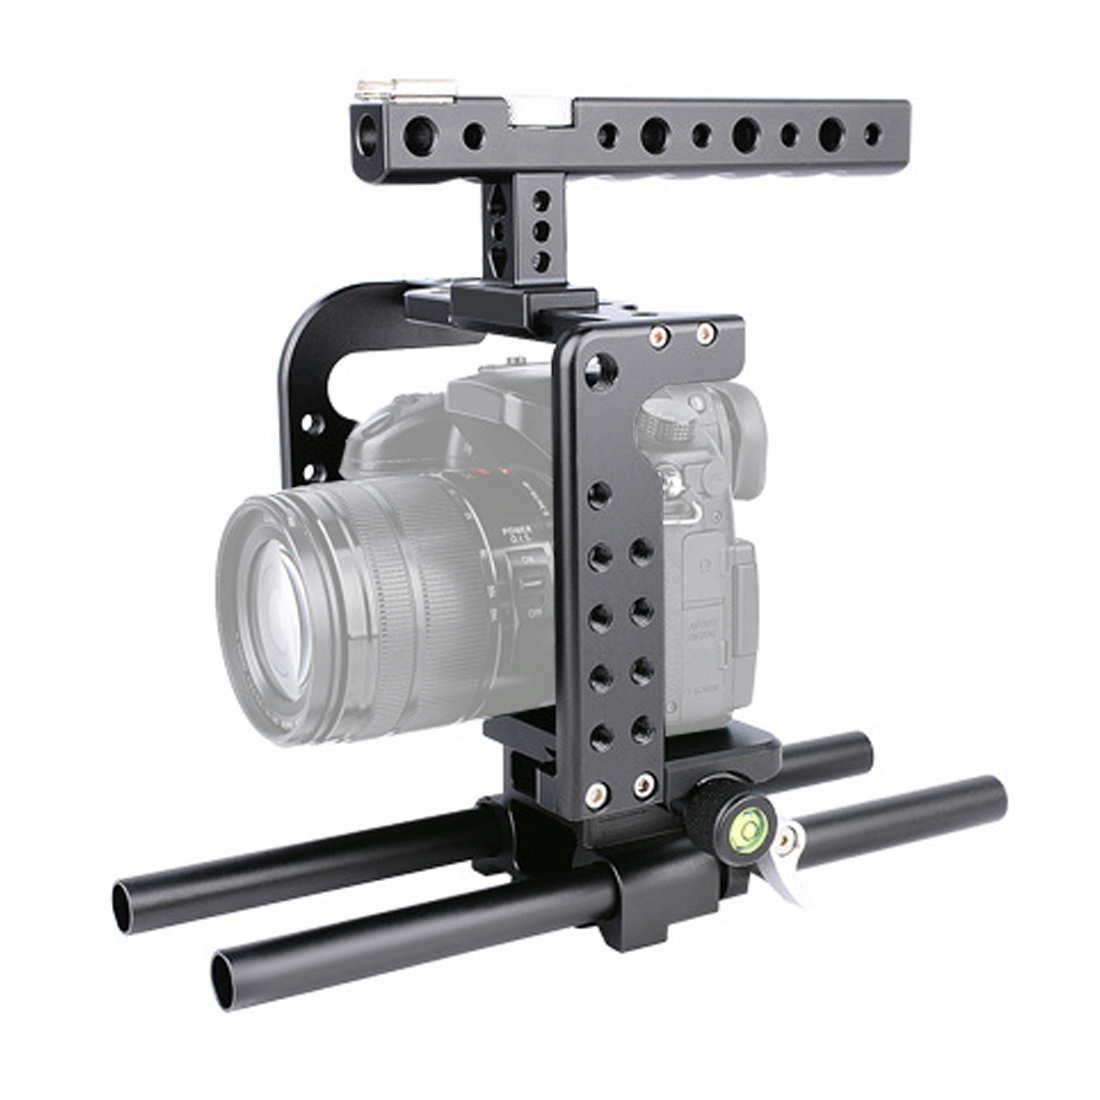 Camera Cage + Top Handle + Rail Rod Kit Protecting Case Mount Video Stabilizer Cage kit for Panasonic Lumix GH5 GH4 Camera Cage + Top Handle + Rail Rod Kit Protecting Case Mount Video Stabilizer Cage kit for Panasonic Lumix GH5 GH4